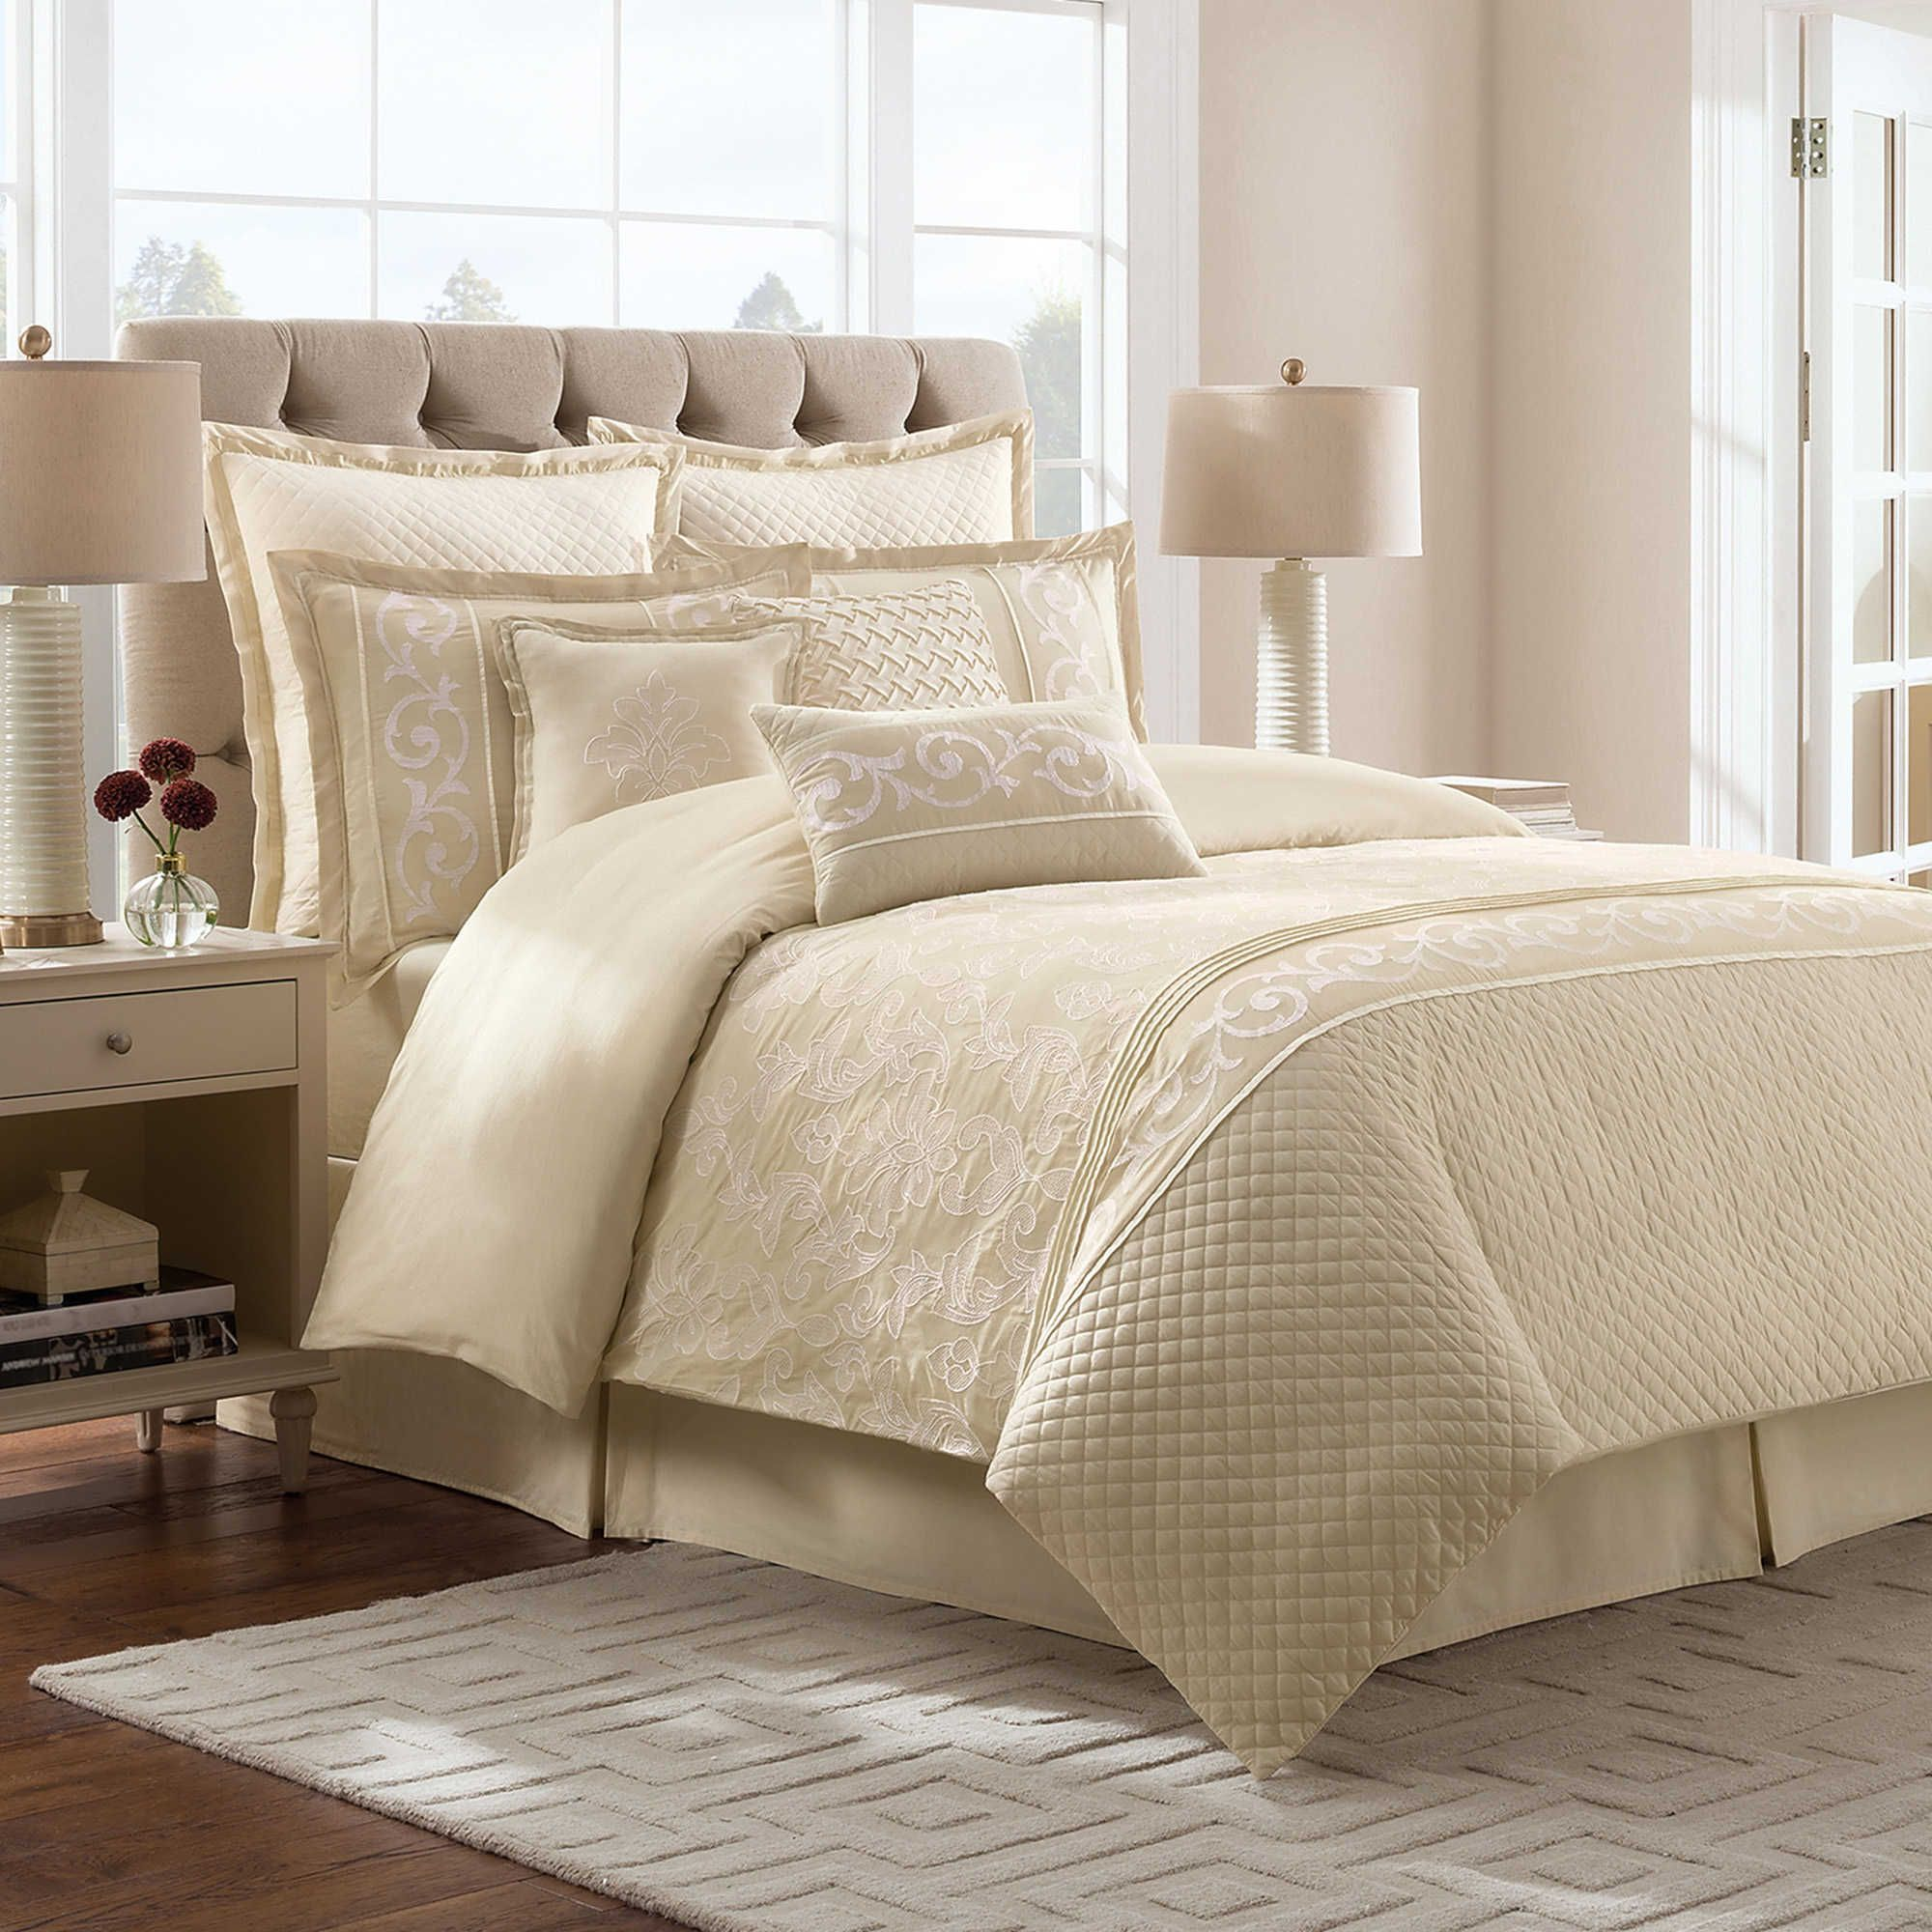 I like this Ivory Comforter Set too. For the Home